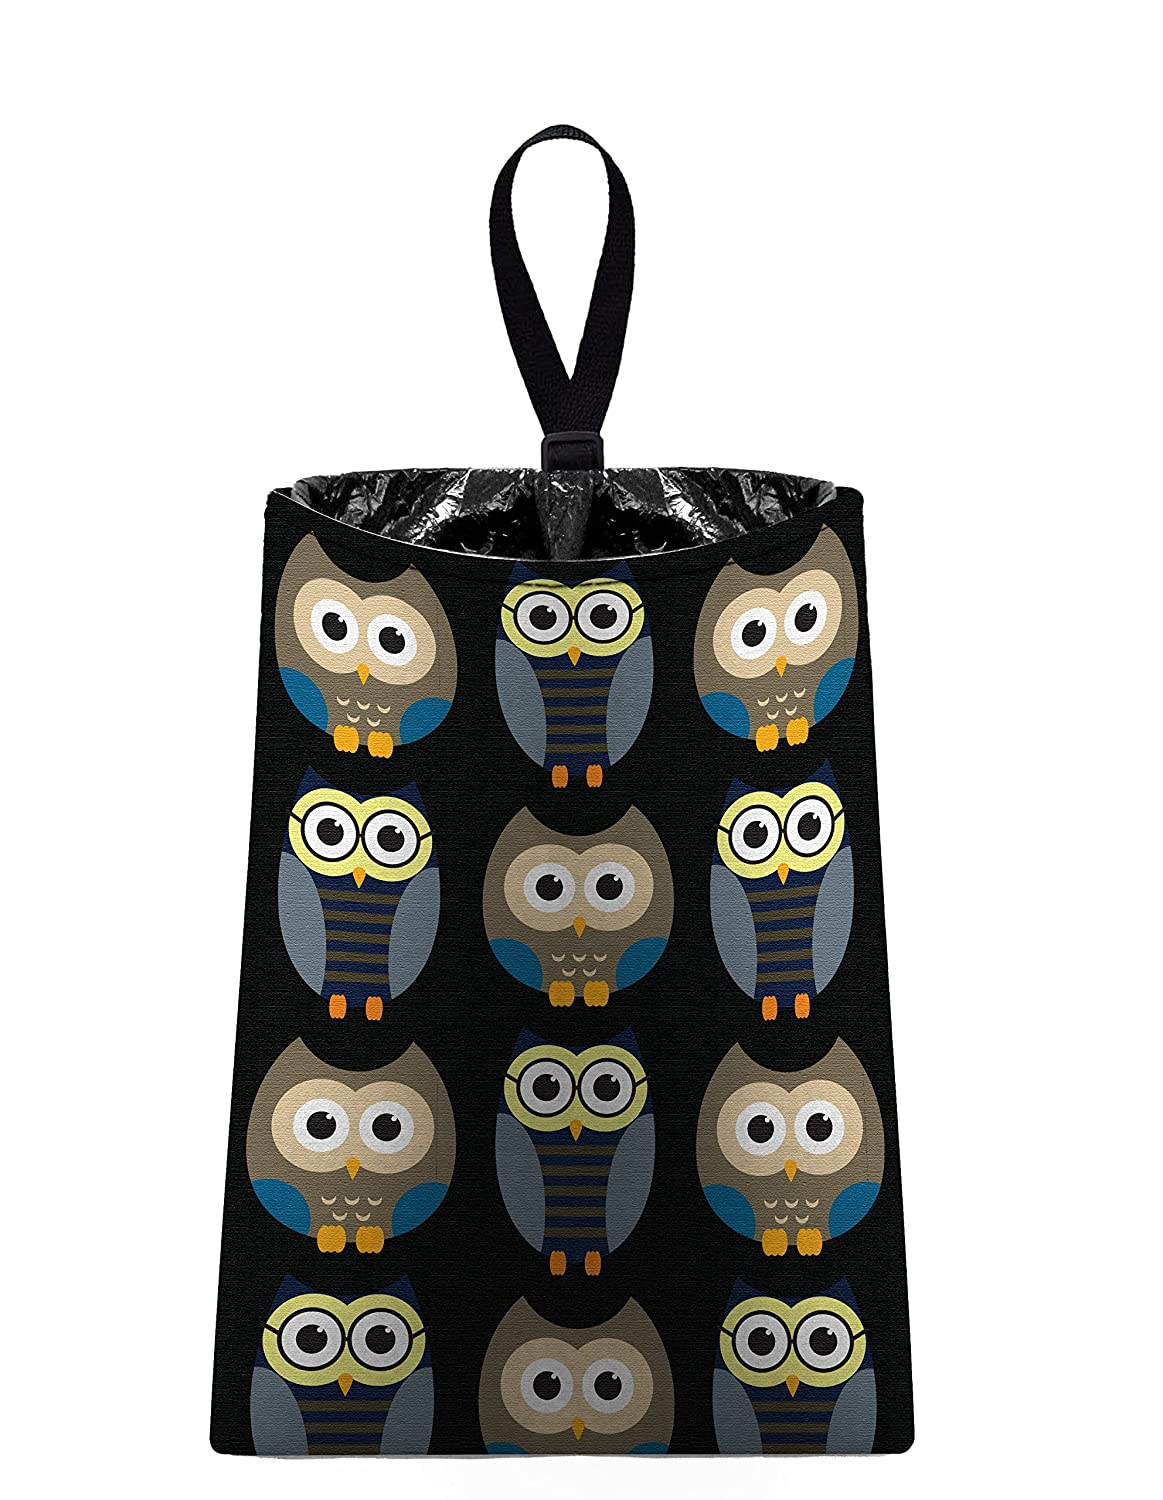 Auto Trash (Owls - Midnight) by The Mod Mobile - litter bag/garbage can for your car by The Mod Mobile   B004VY6MJO